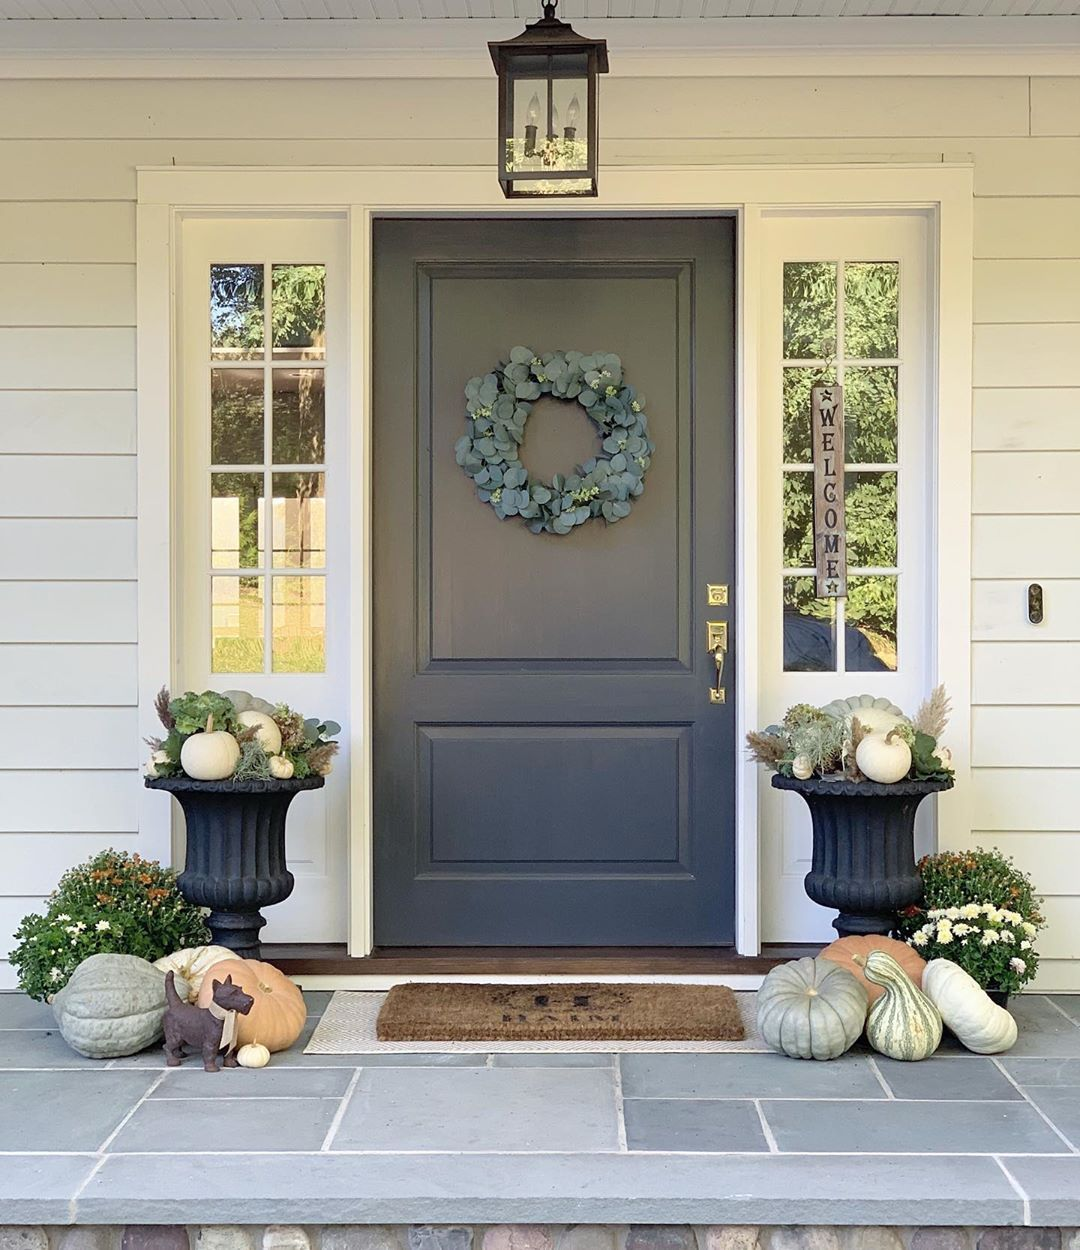 1569404384 501 front porch decor ideas to welcome fall with - Front Porch Decor Ideas To Welcome Fall With